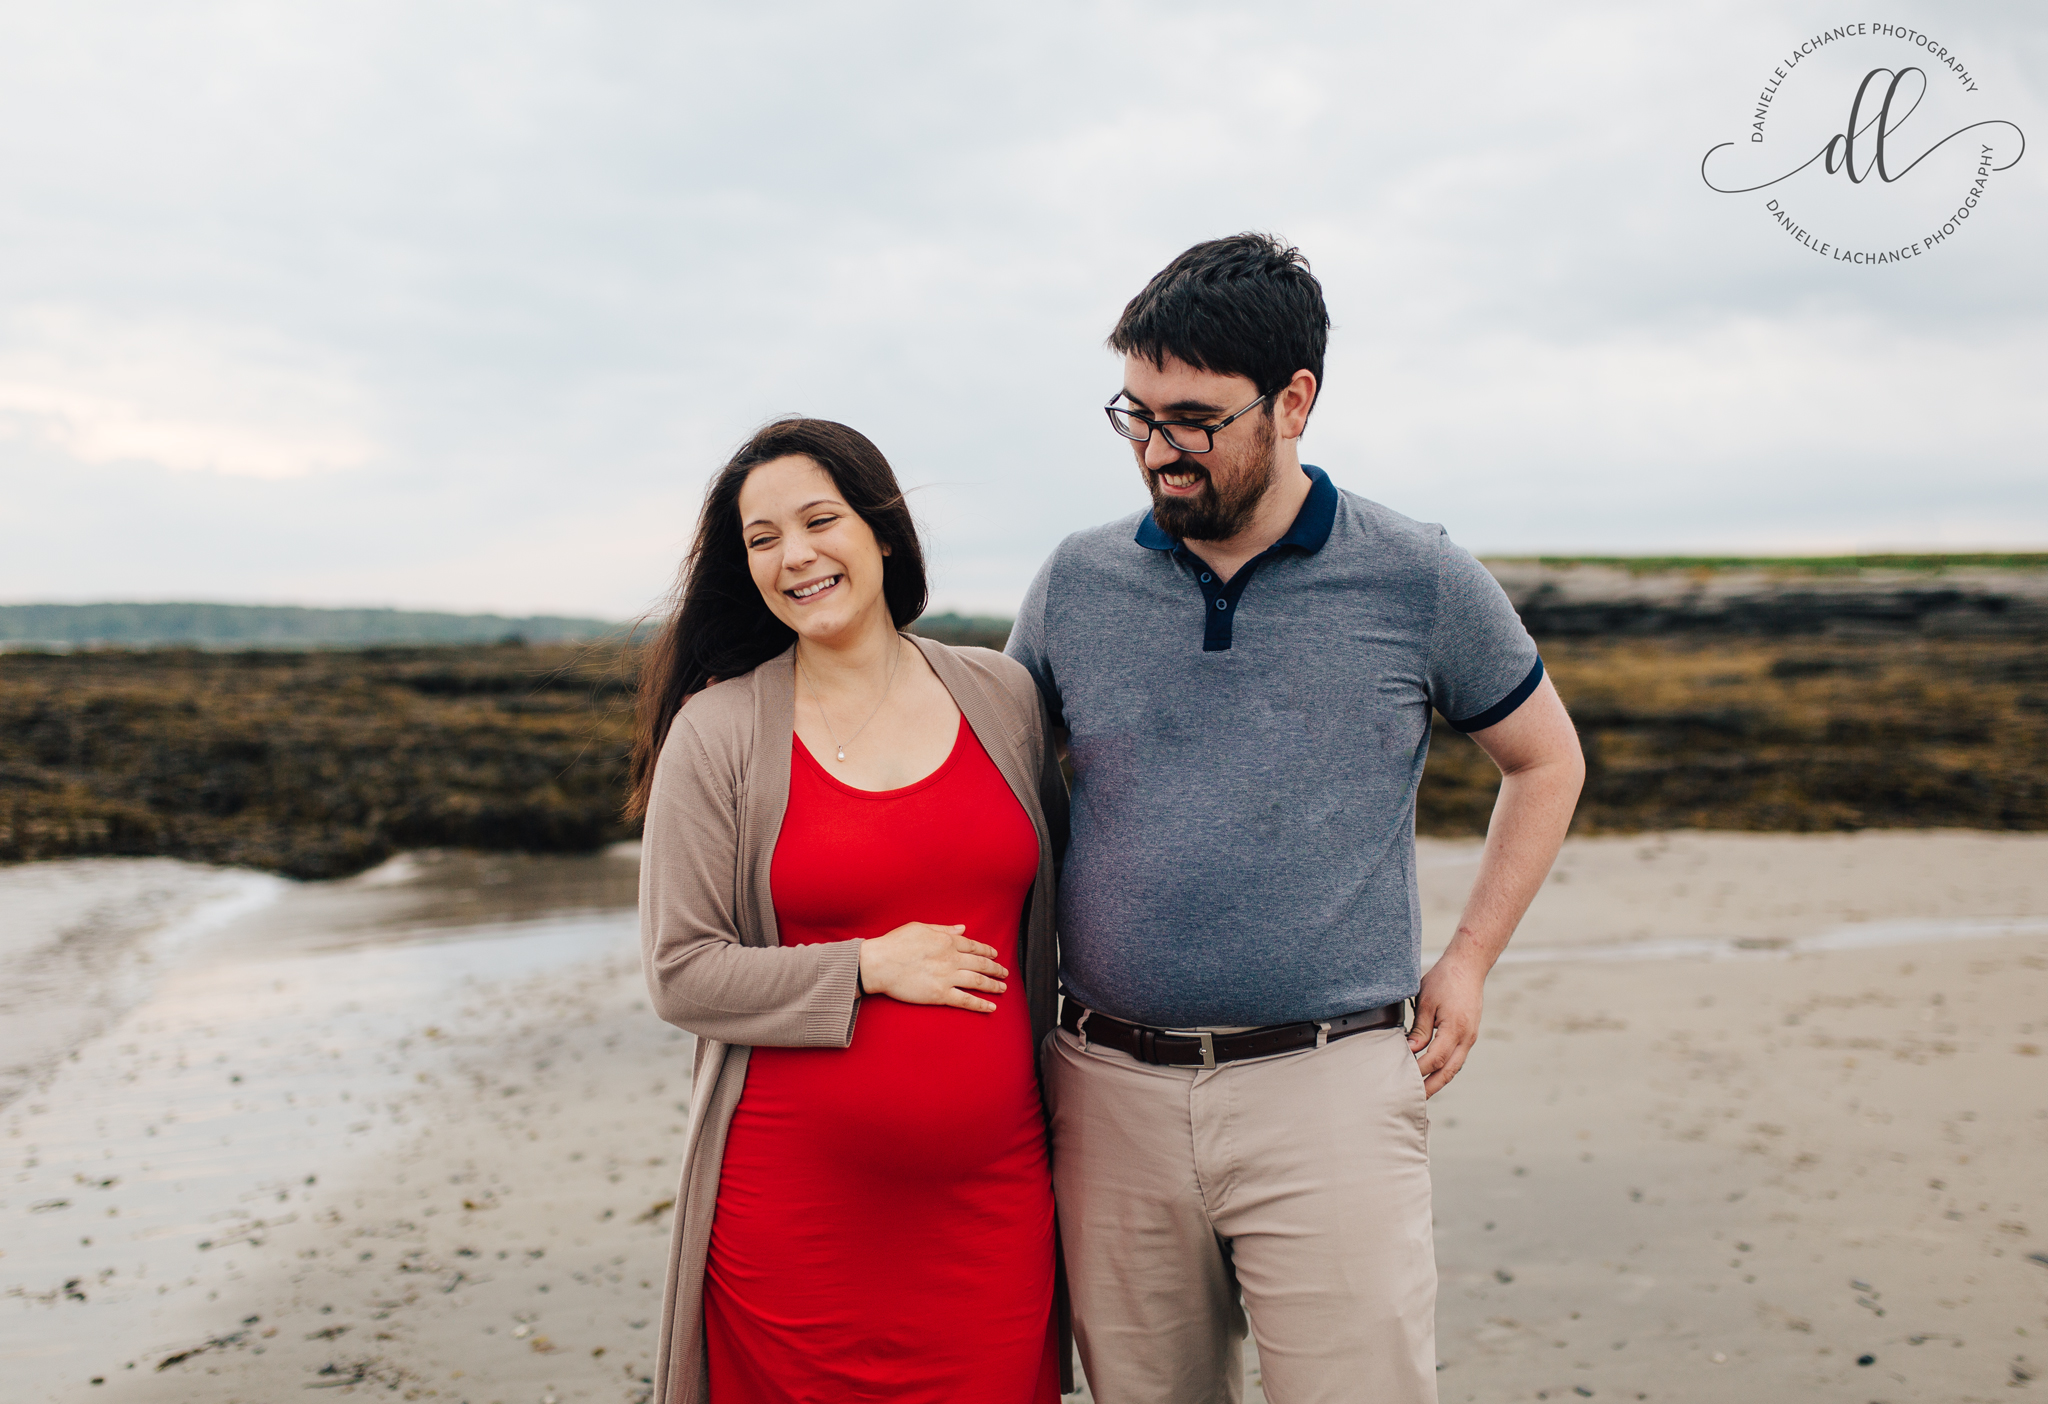 maine-maternity-photographer-southern-maine-beach-lifestyle-photography.jpg